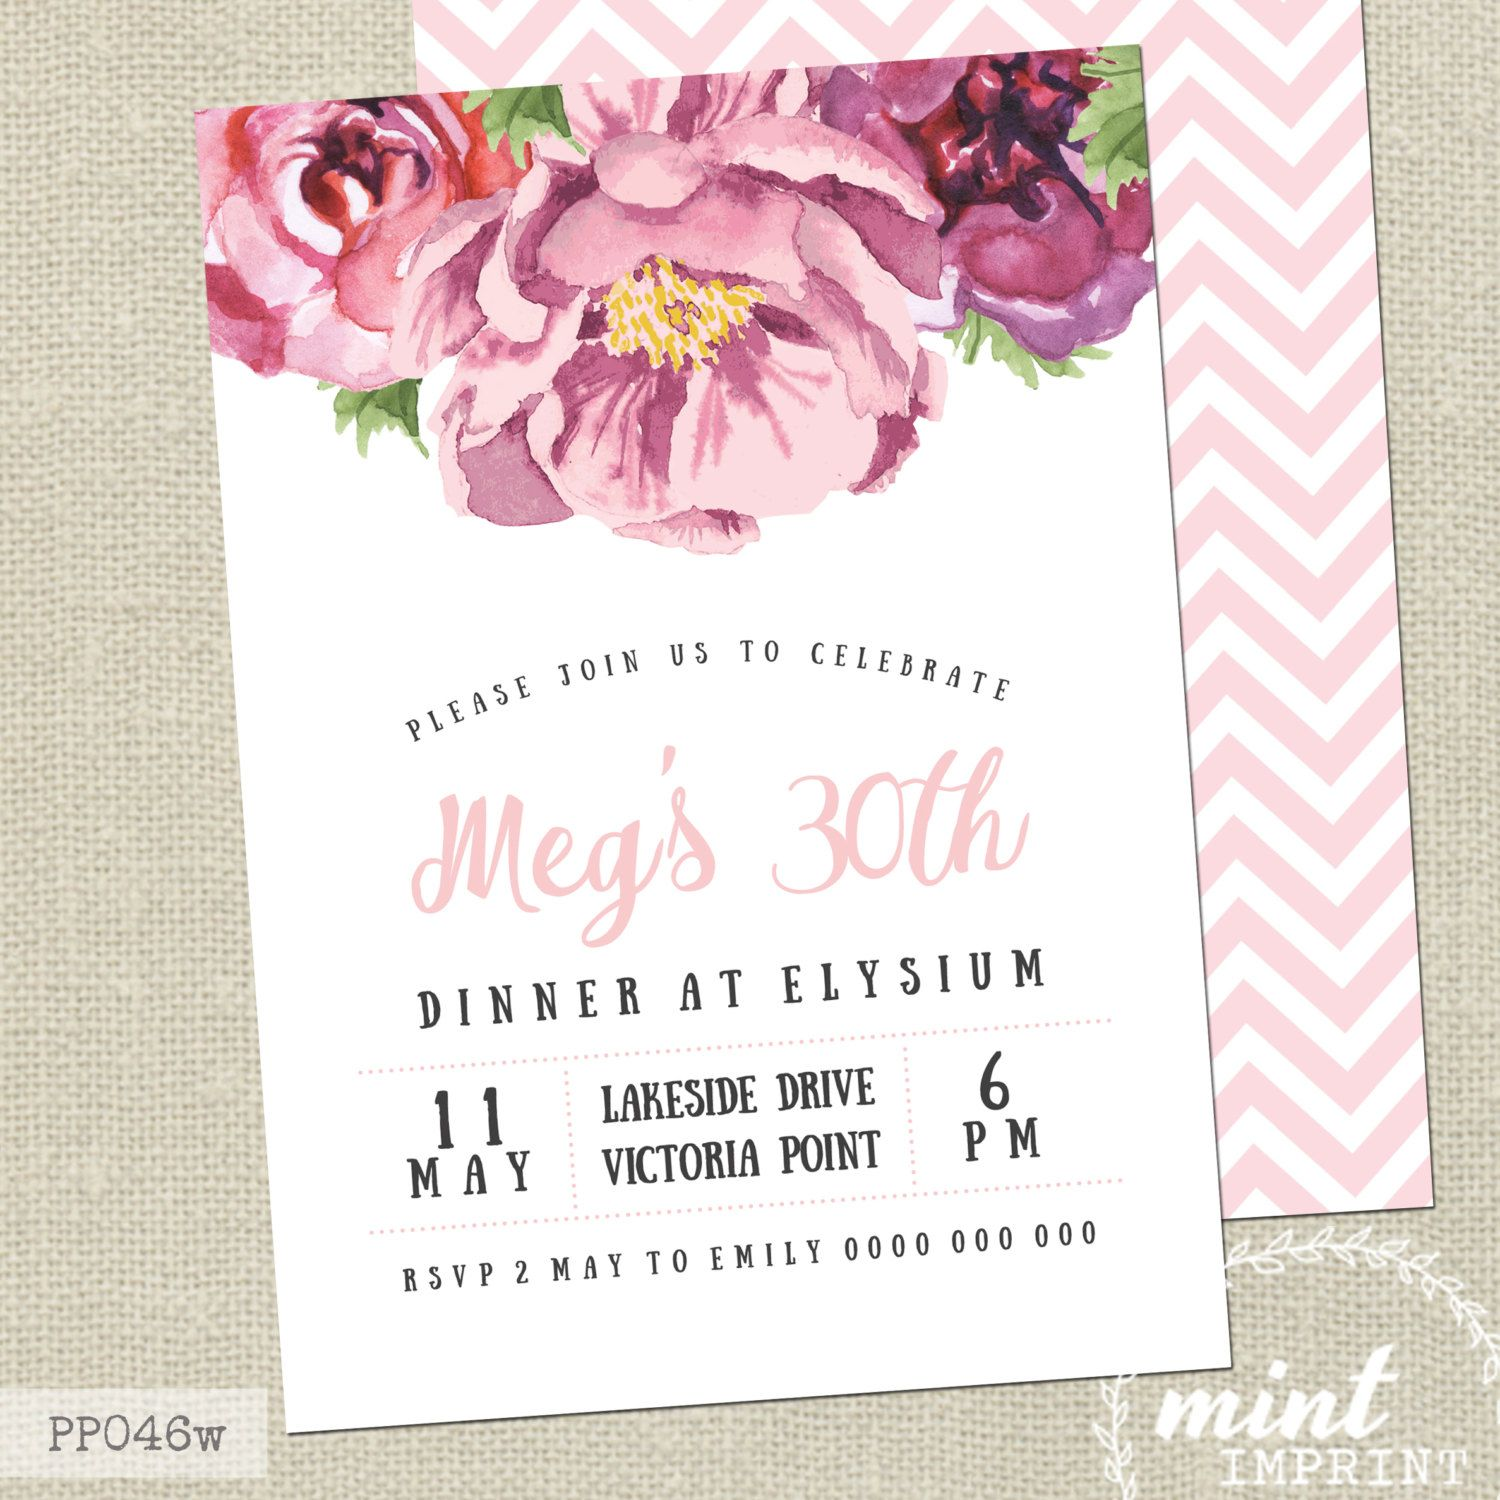 Peony Invitation / White and Pink Floral Printable Invitation / Peony Invitation / 30th Adult Birthday / Engagement Baby Shower Invitation #Pink #Wedding #PinkWedding #Paper